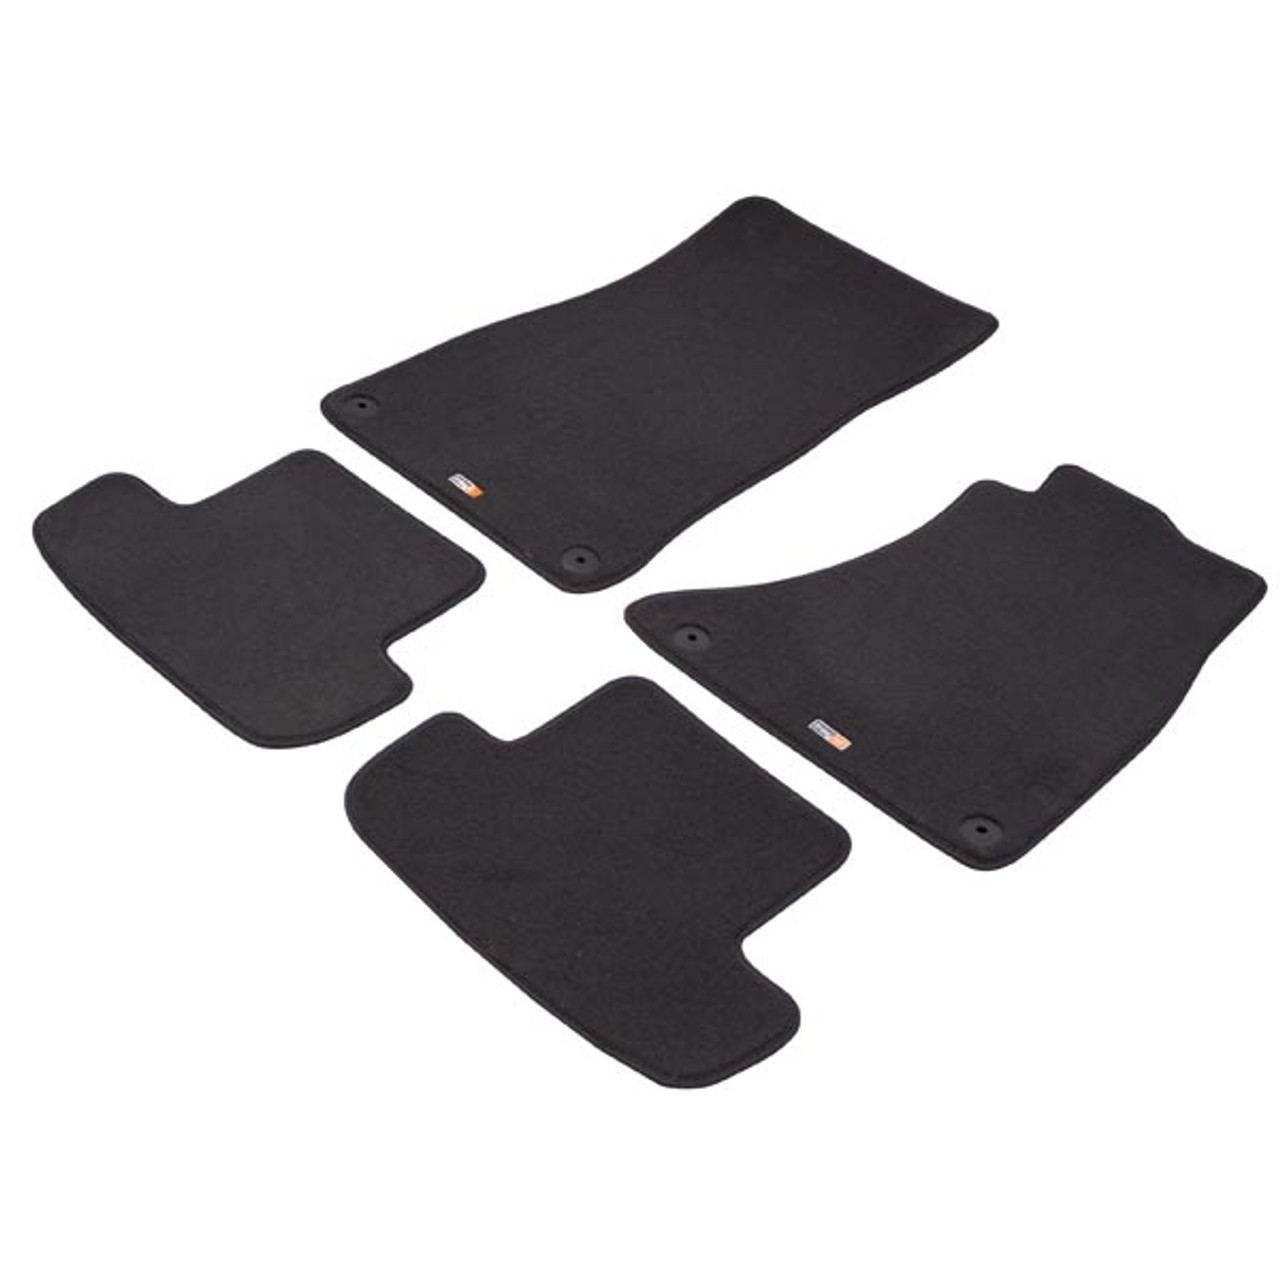 Custom Made Carpet Car Mats For Audi A5/S5 Coupe 2011 to 2016